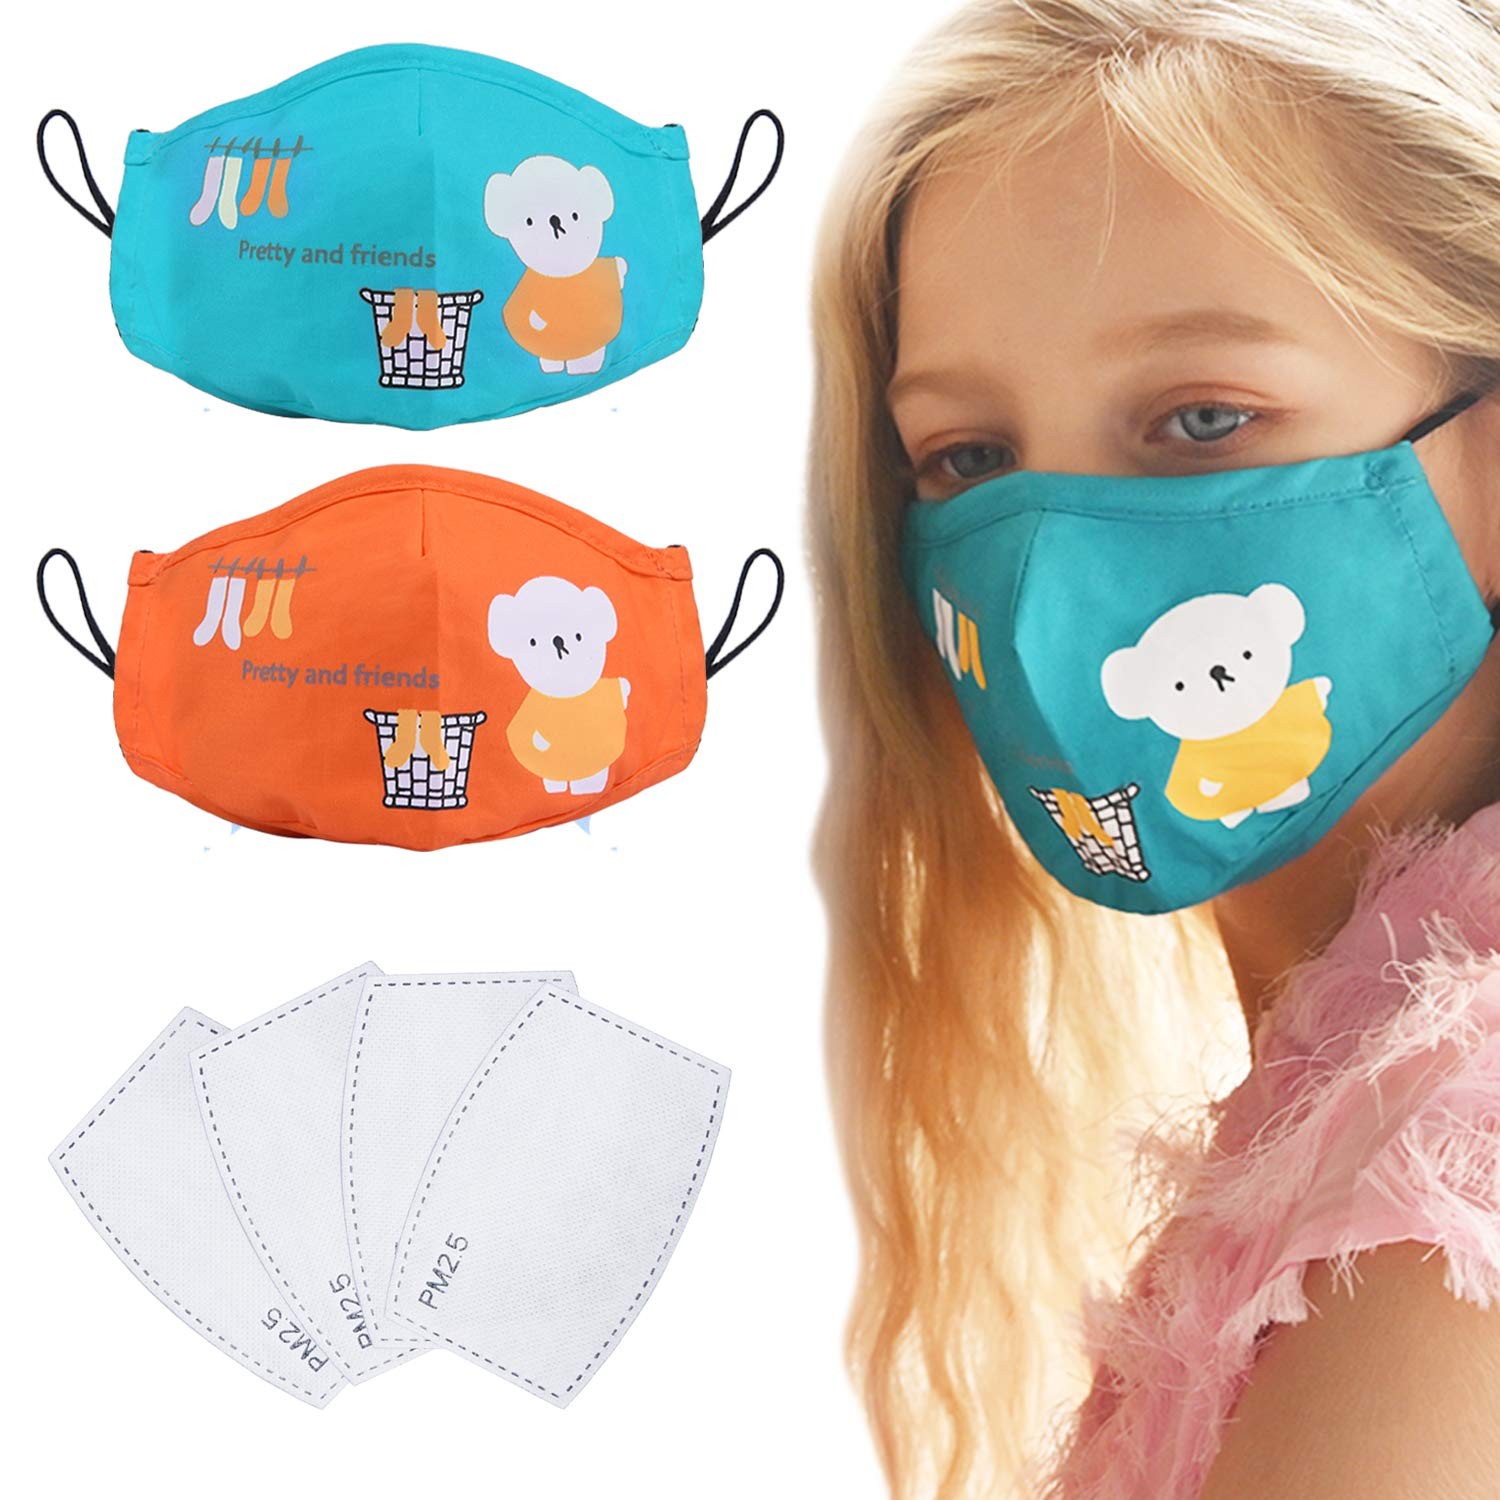 2 Pack Reusable Cotton Cover for Kids, Washable Fashion Bear Cotton Cloth with 4 Pcs Replacement Filters Adjustable Ear Loops for Children Kids